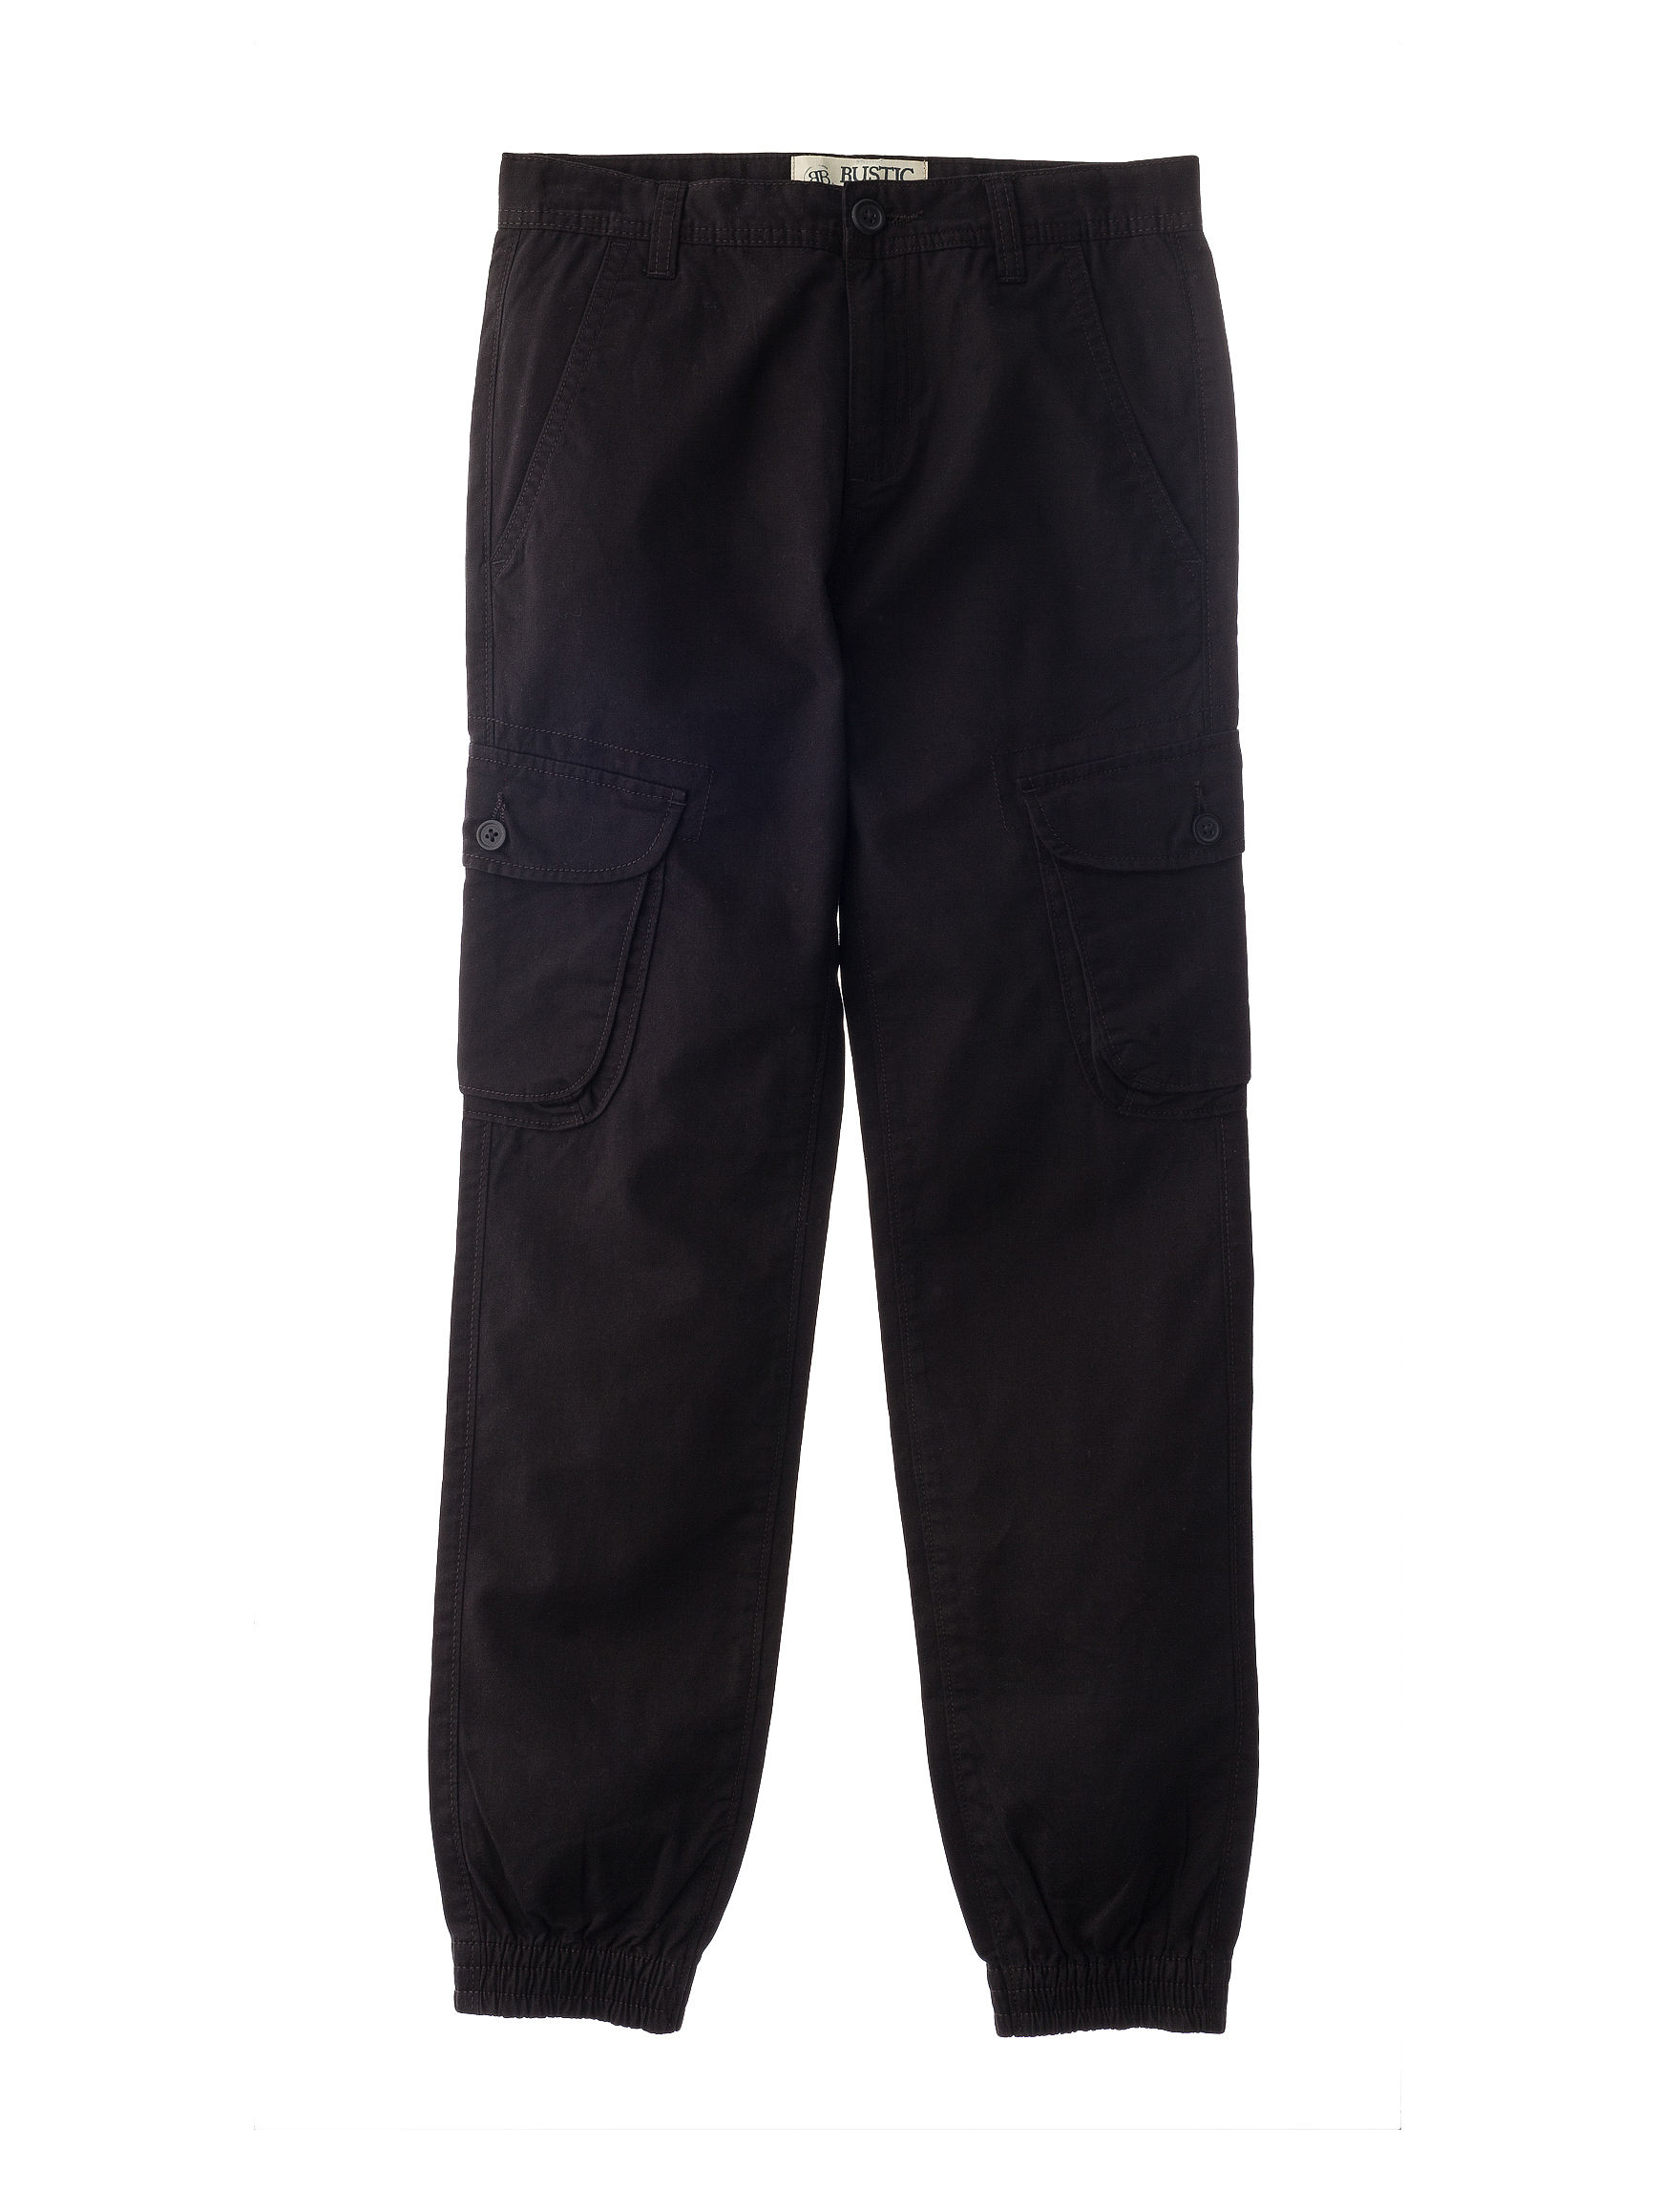 Rustic Blue Black Soft Pants